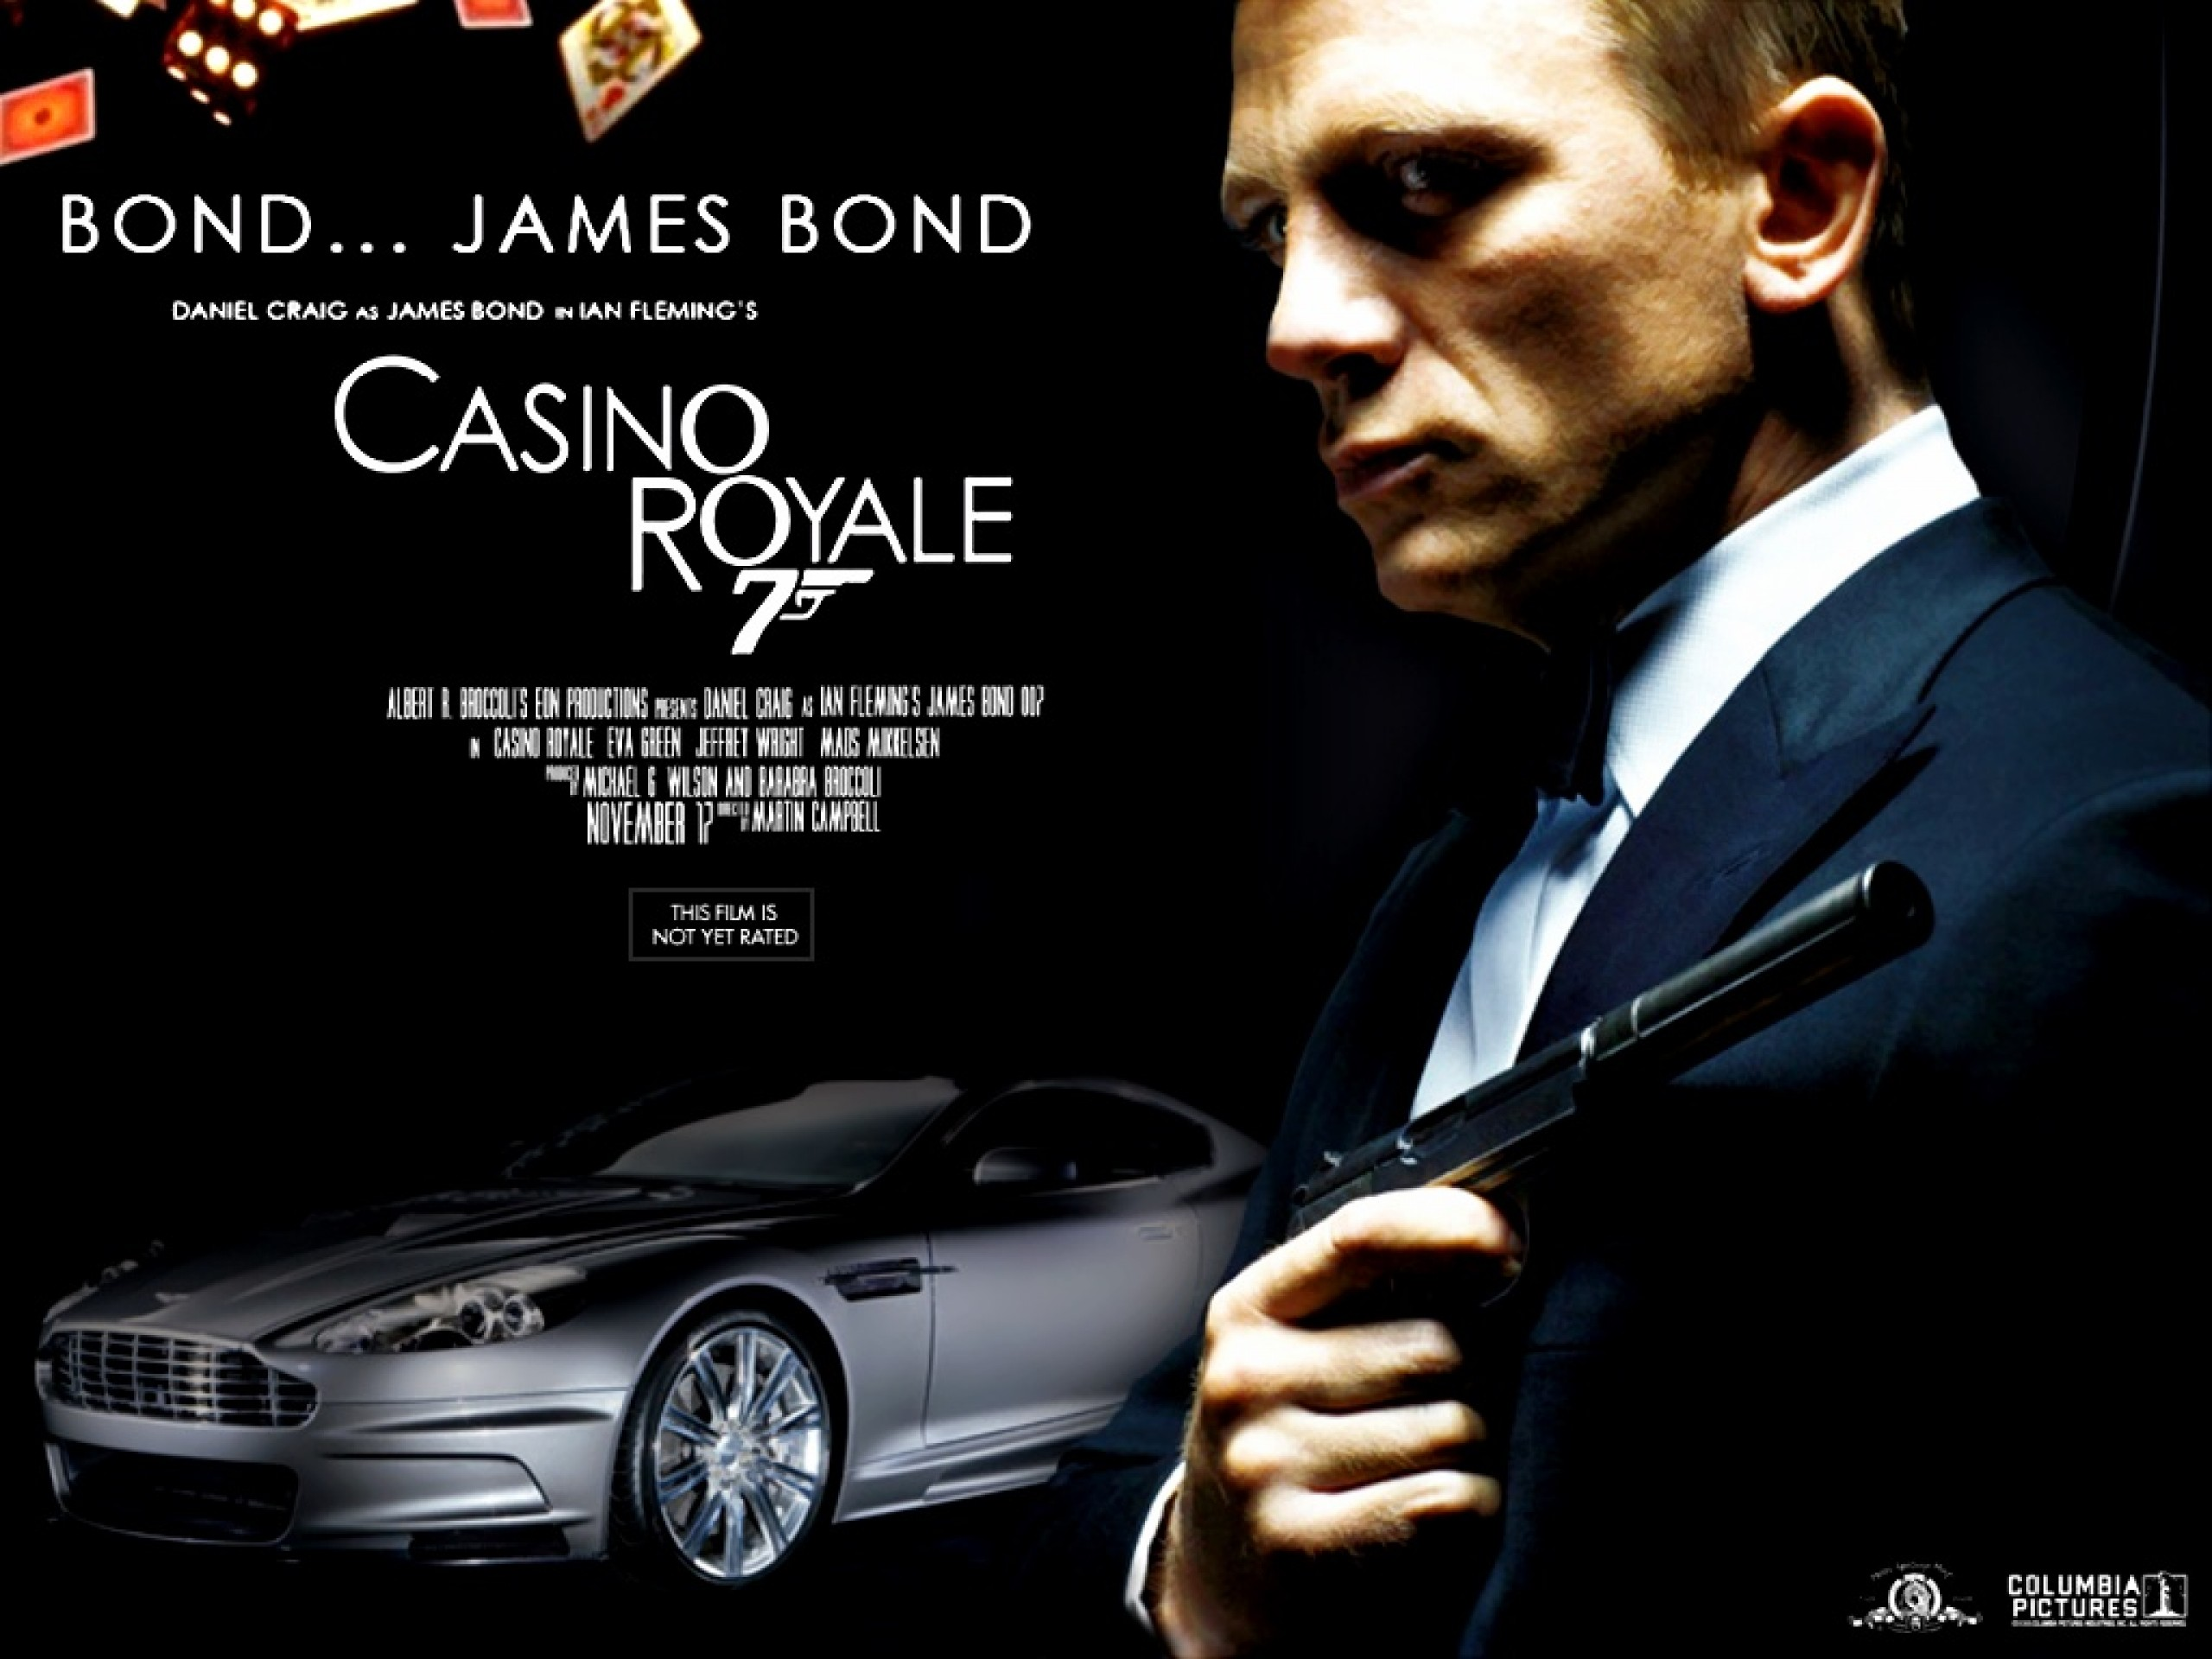 james bond casino royale full movie online spiele queen